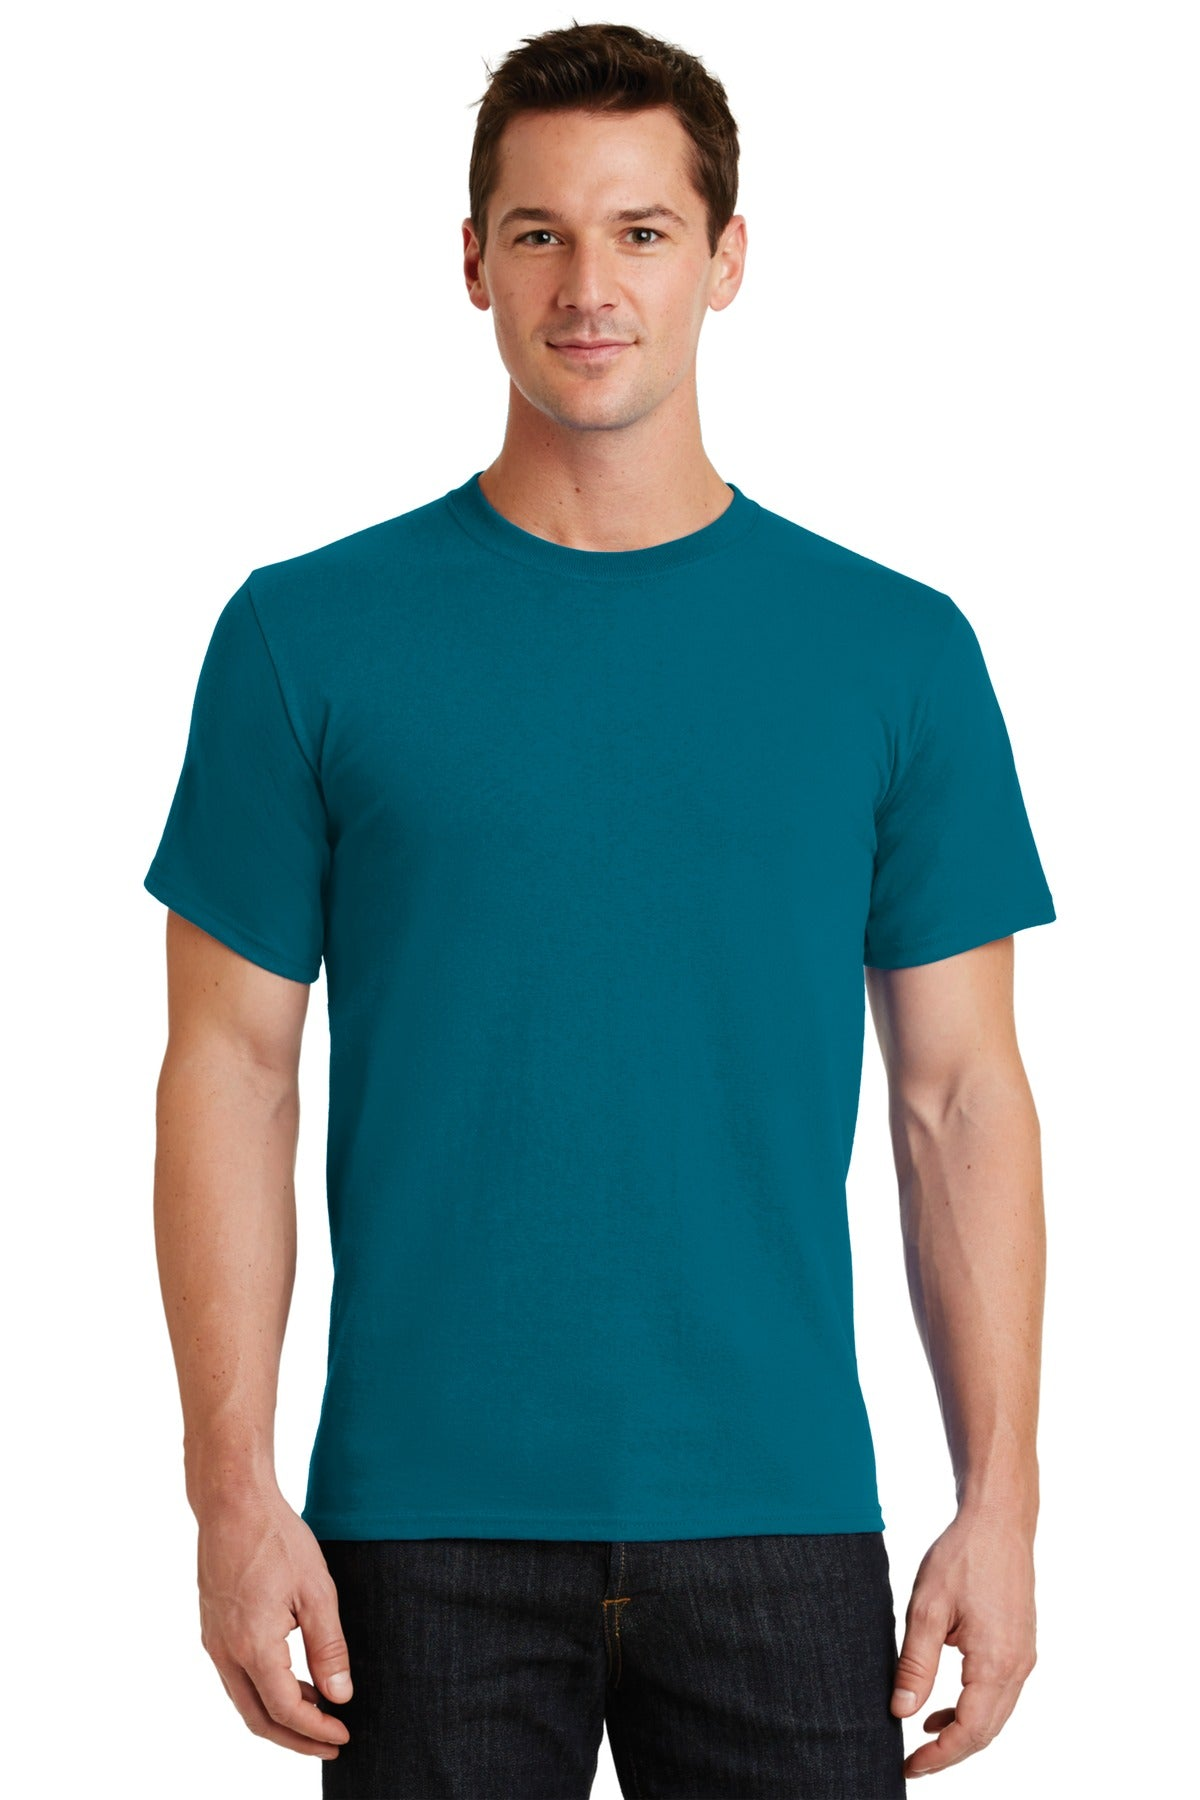 Teal Port & Company - Essential T-Shirt